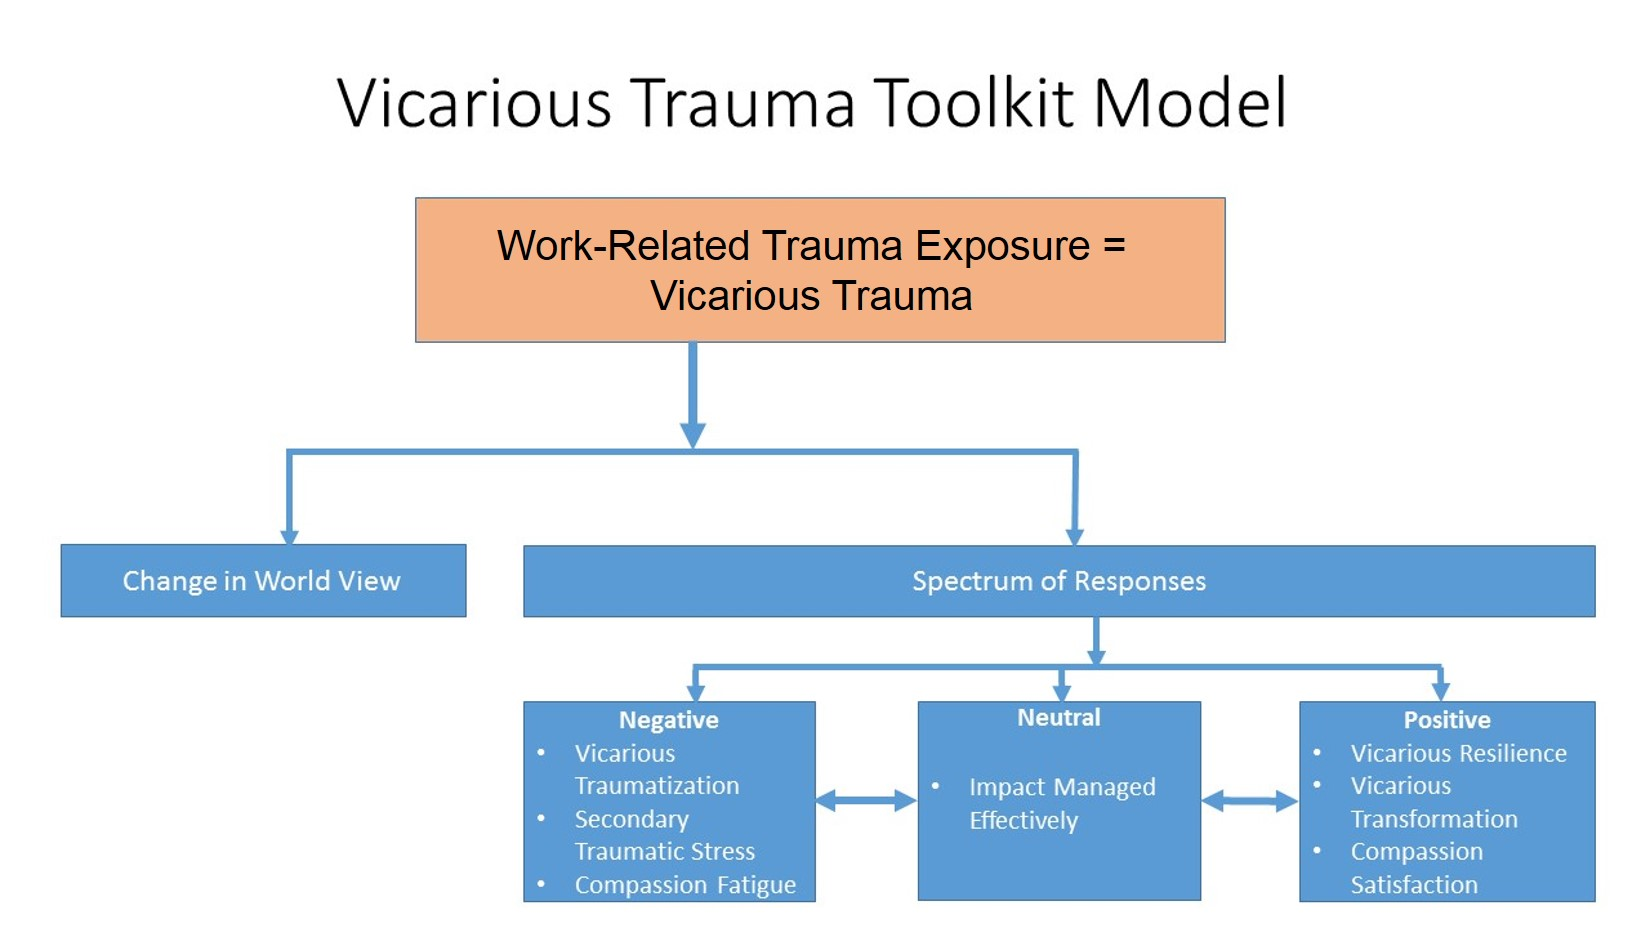 Vicarious Trauma Toolkit Model